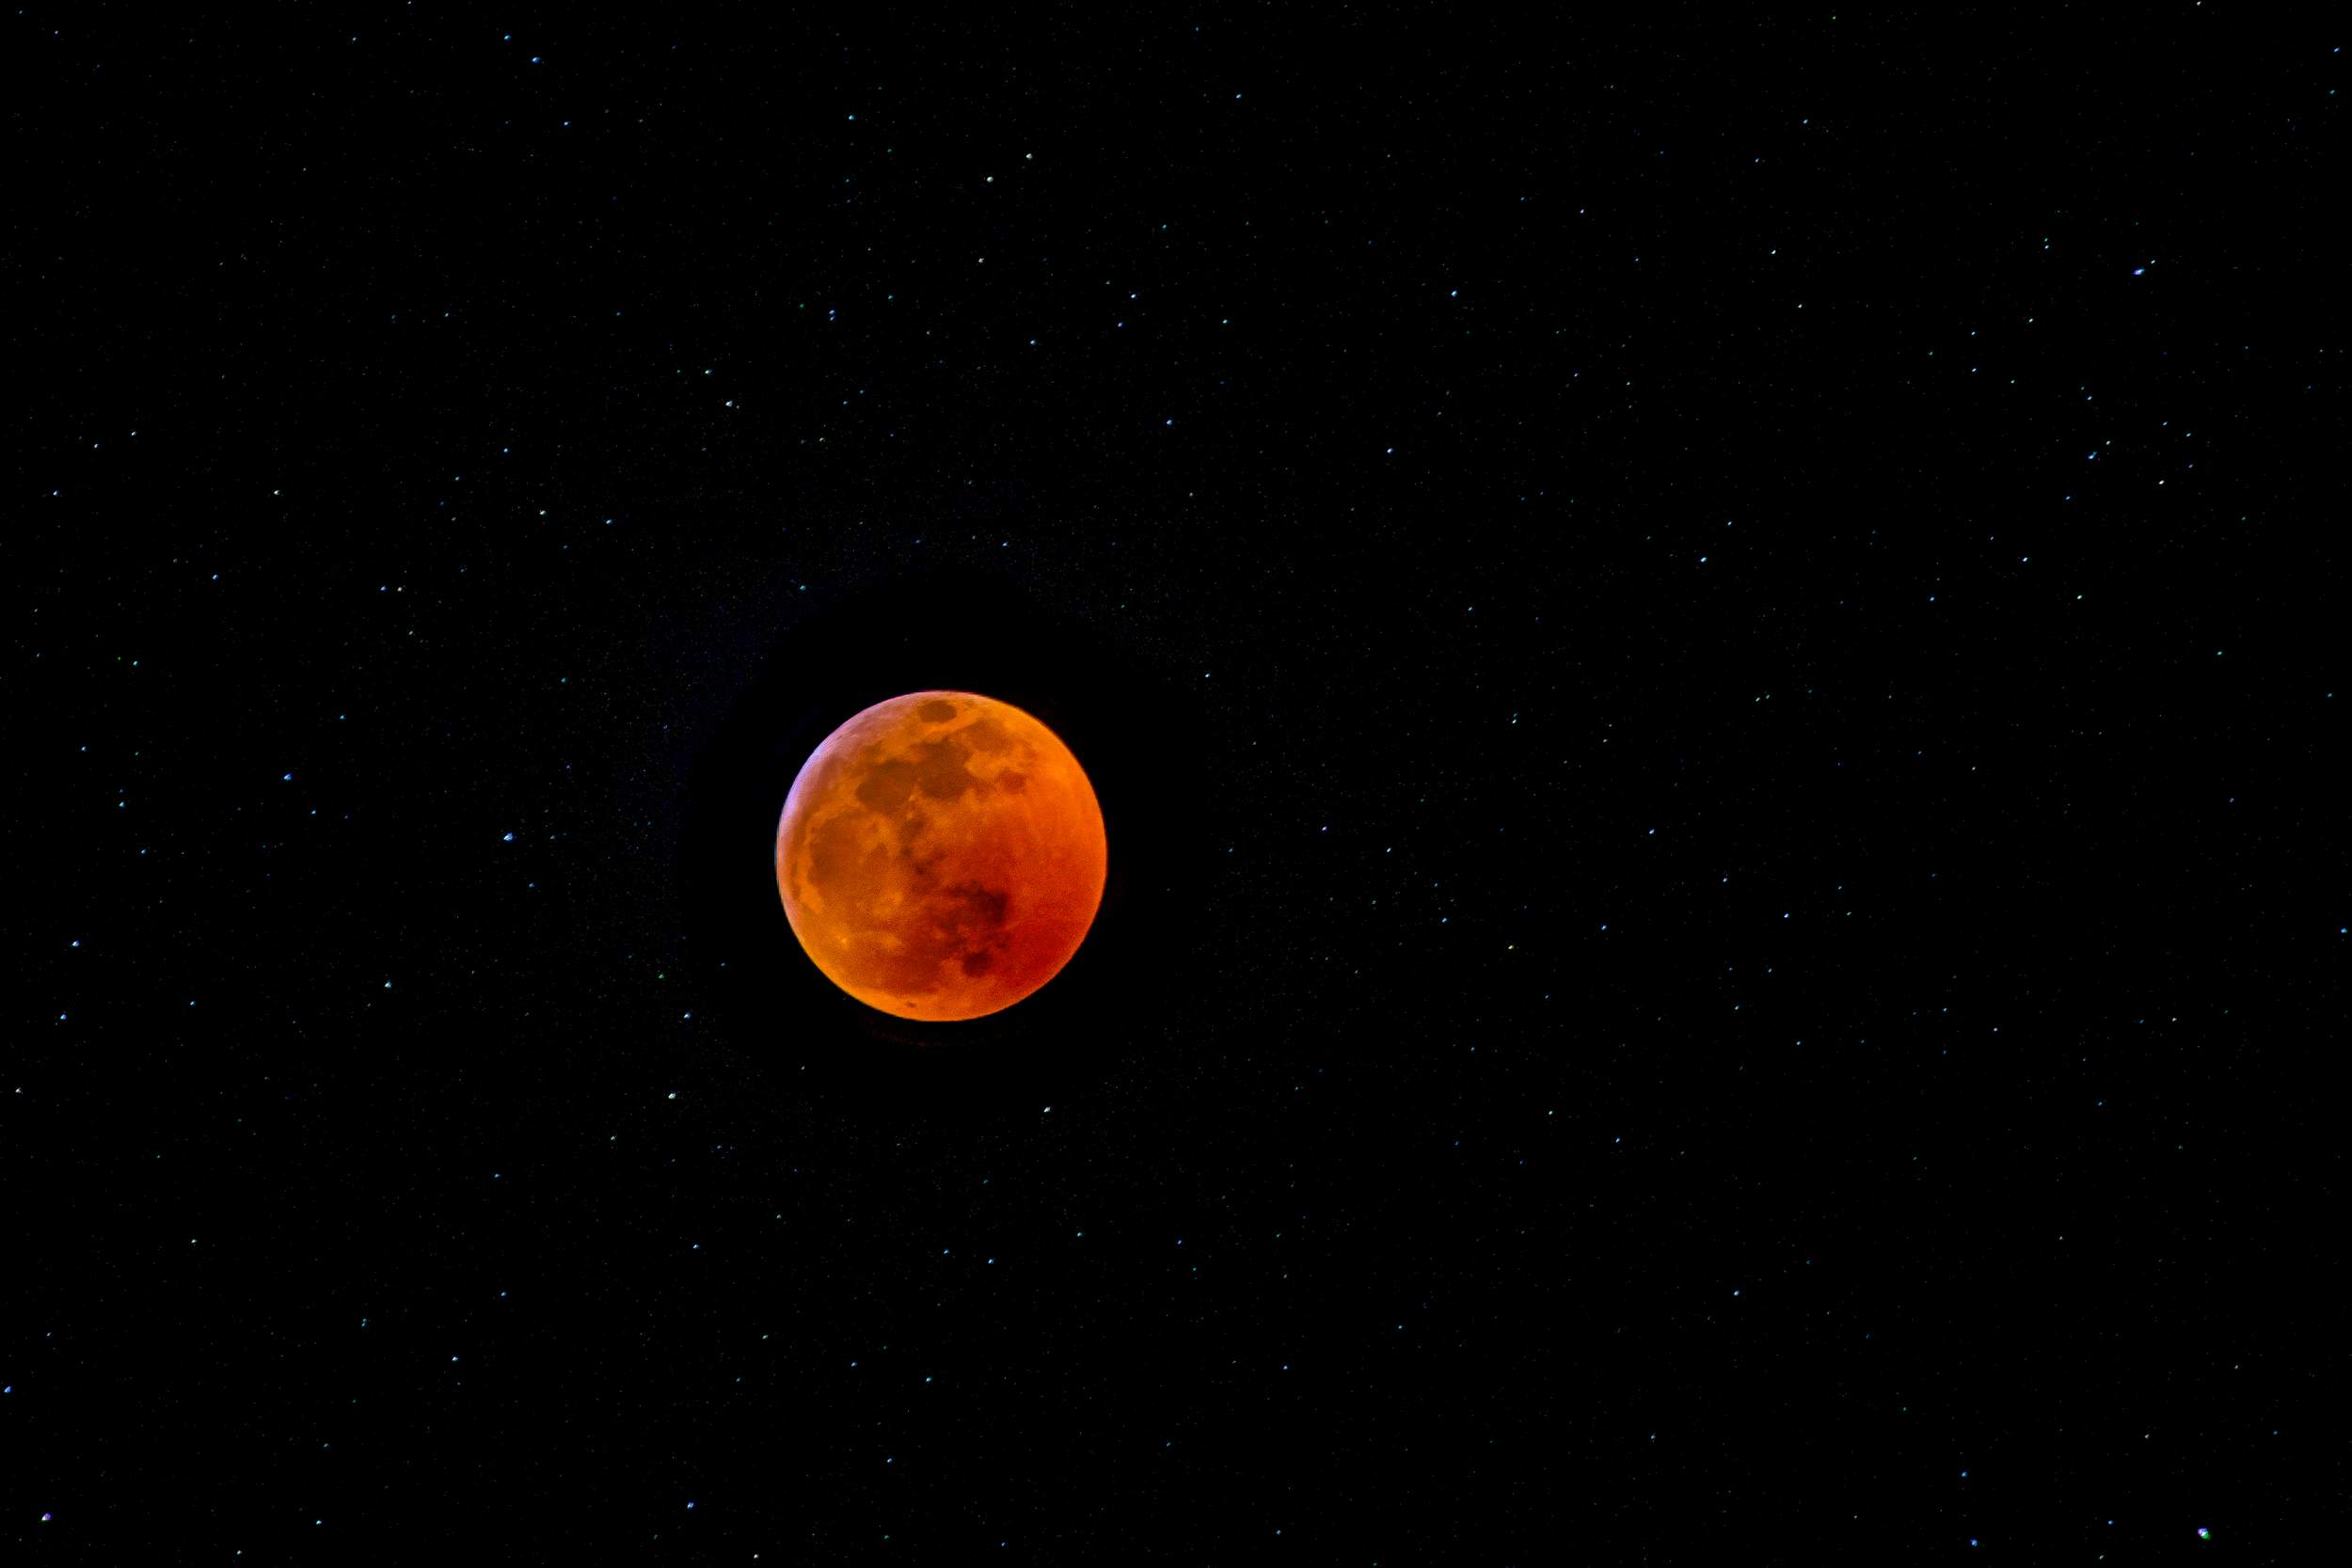 A Meteorite Struck the Moon During Monday's Lunar Eclipse